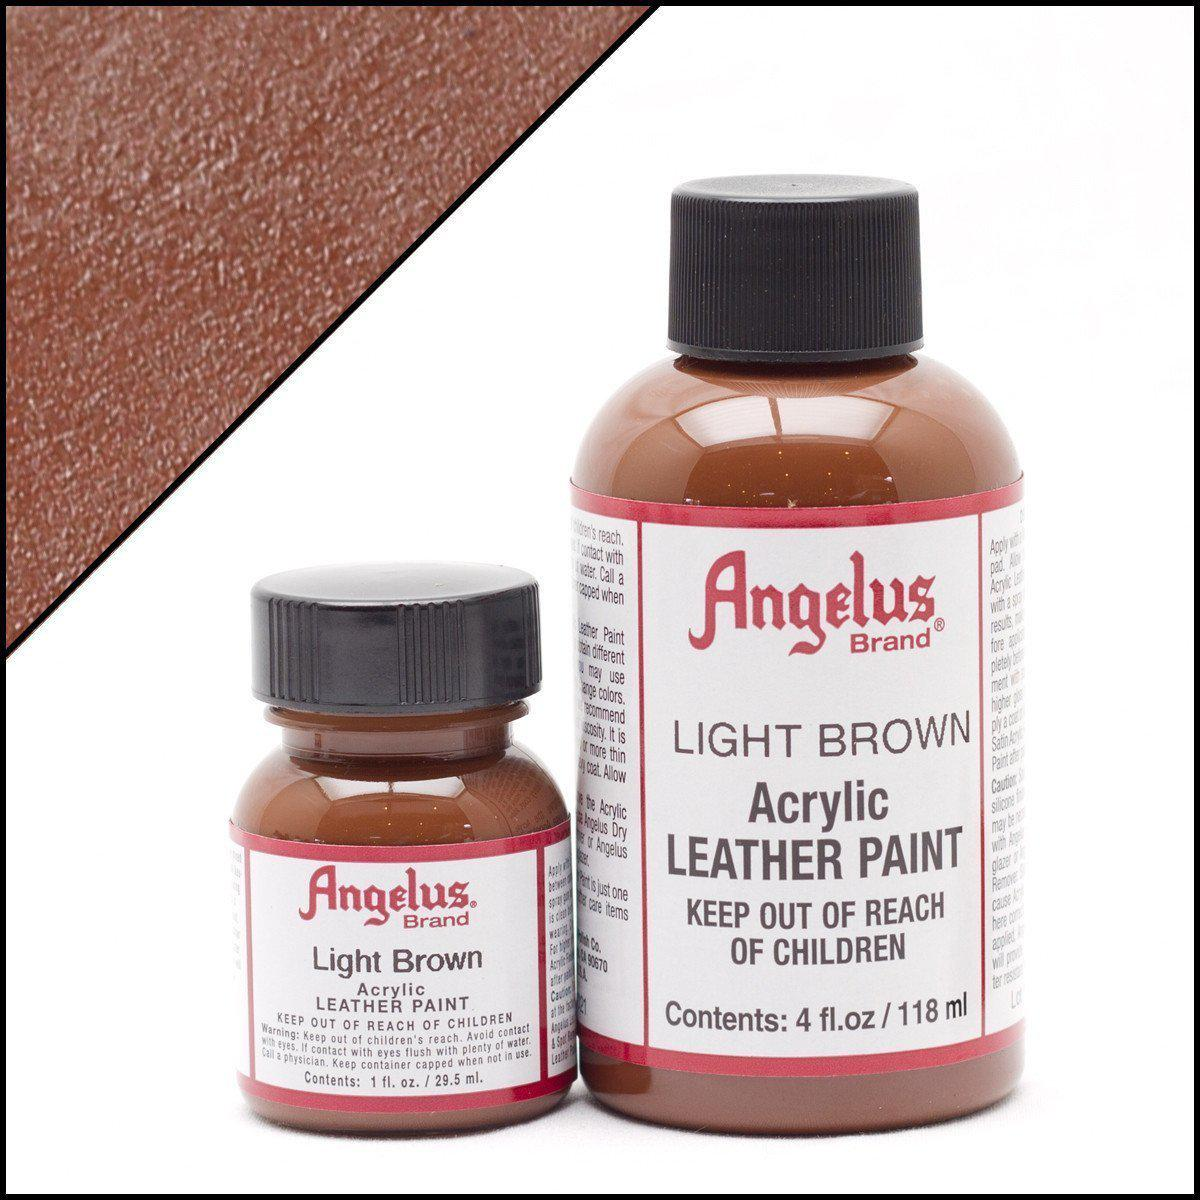 Light Brown-Angelus-Leather Paint-TorontoCollective